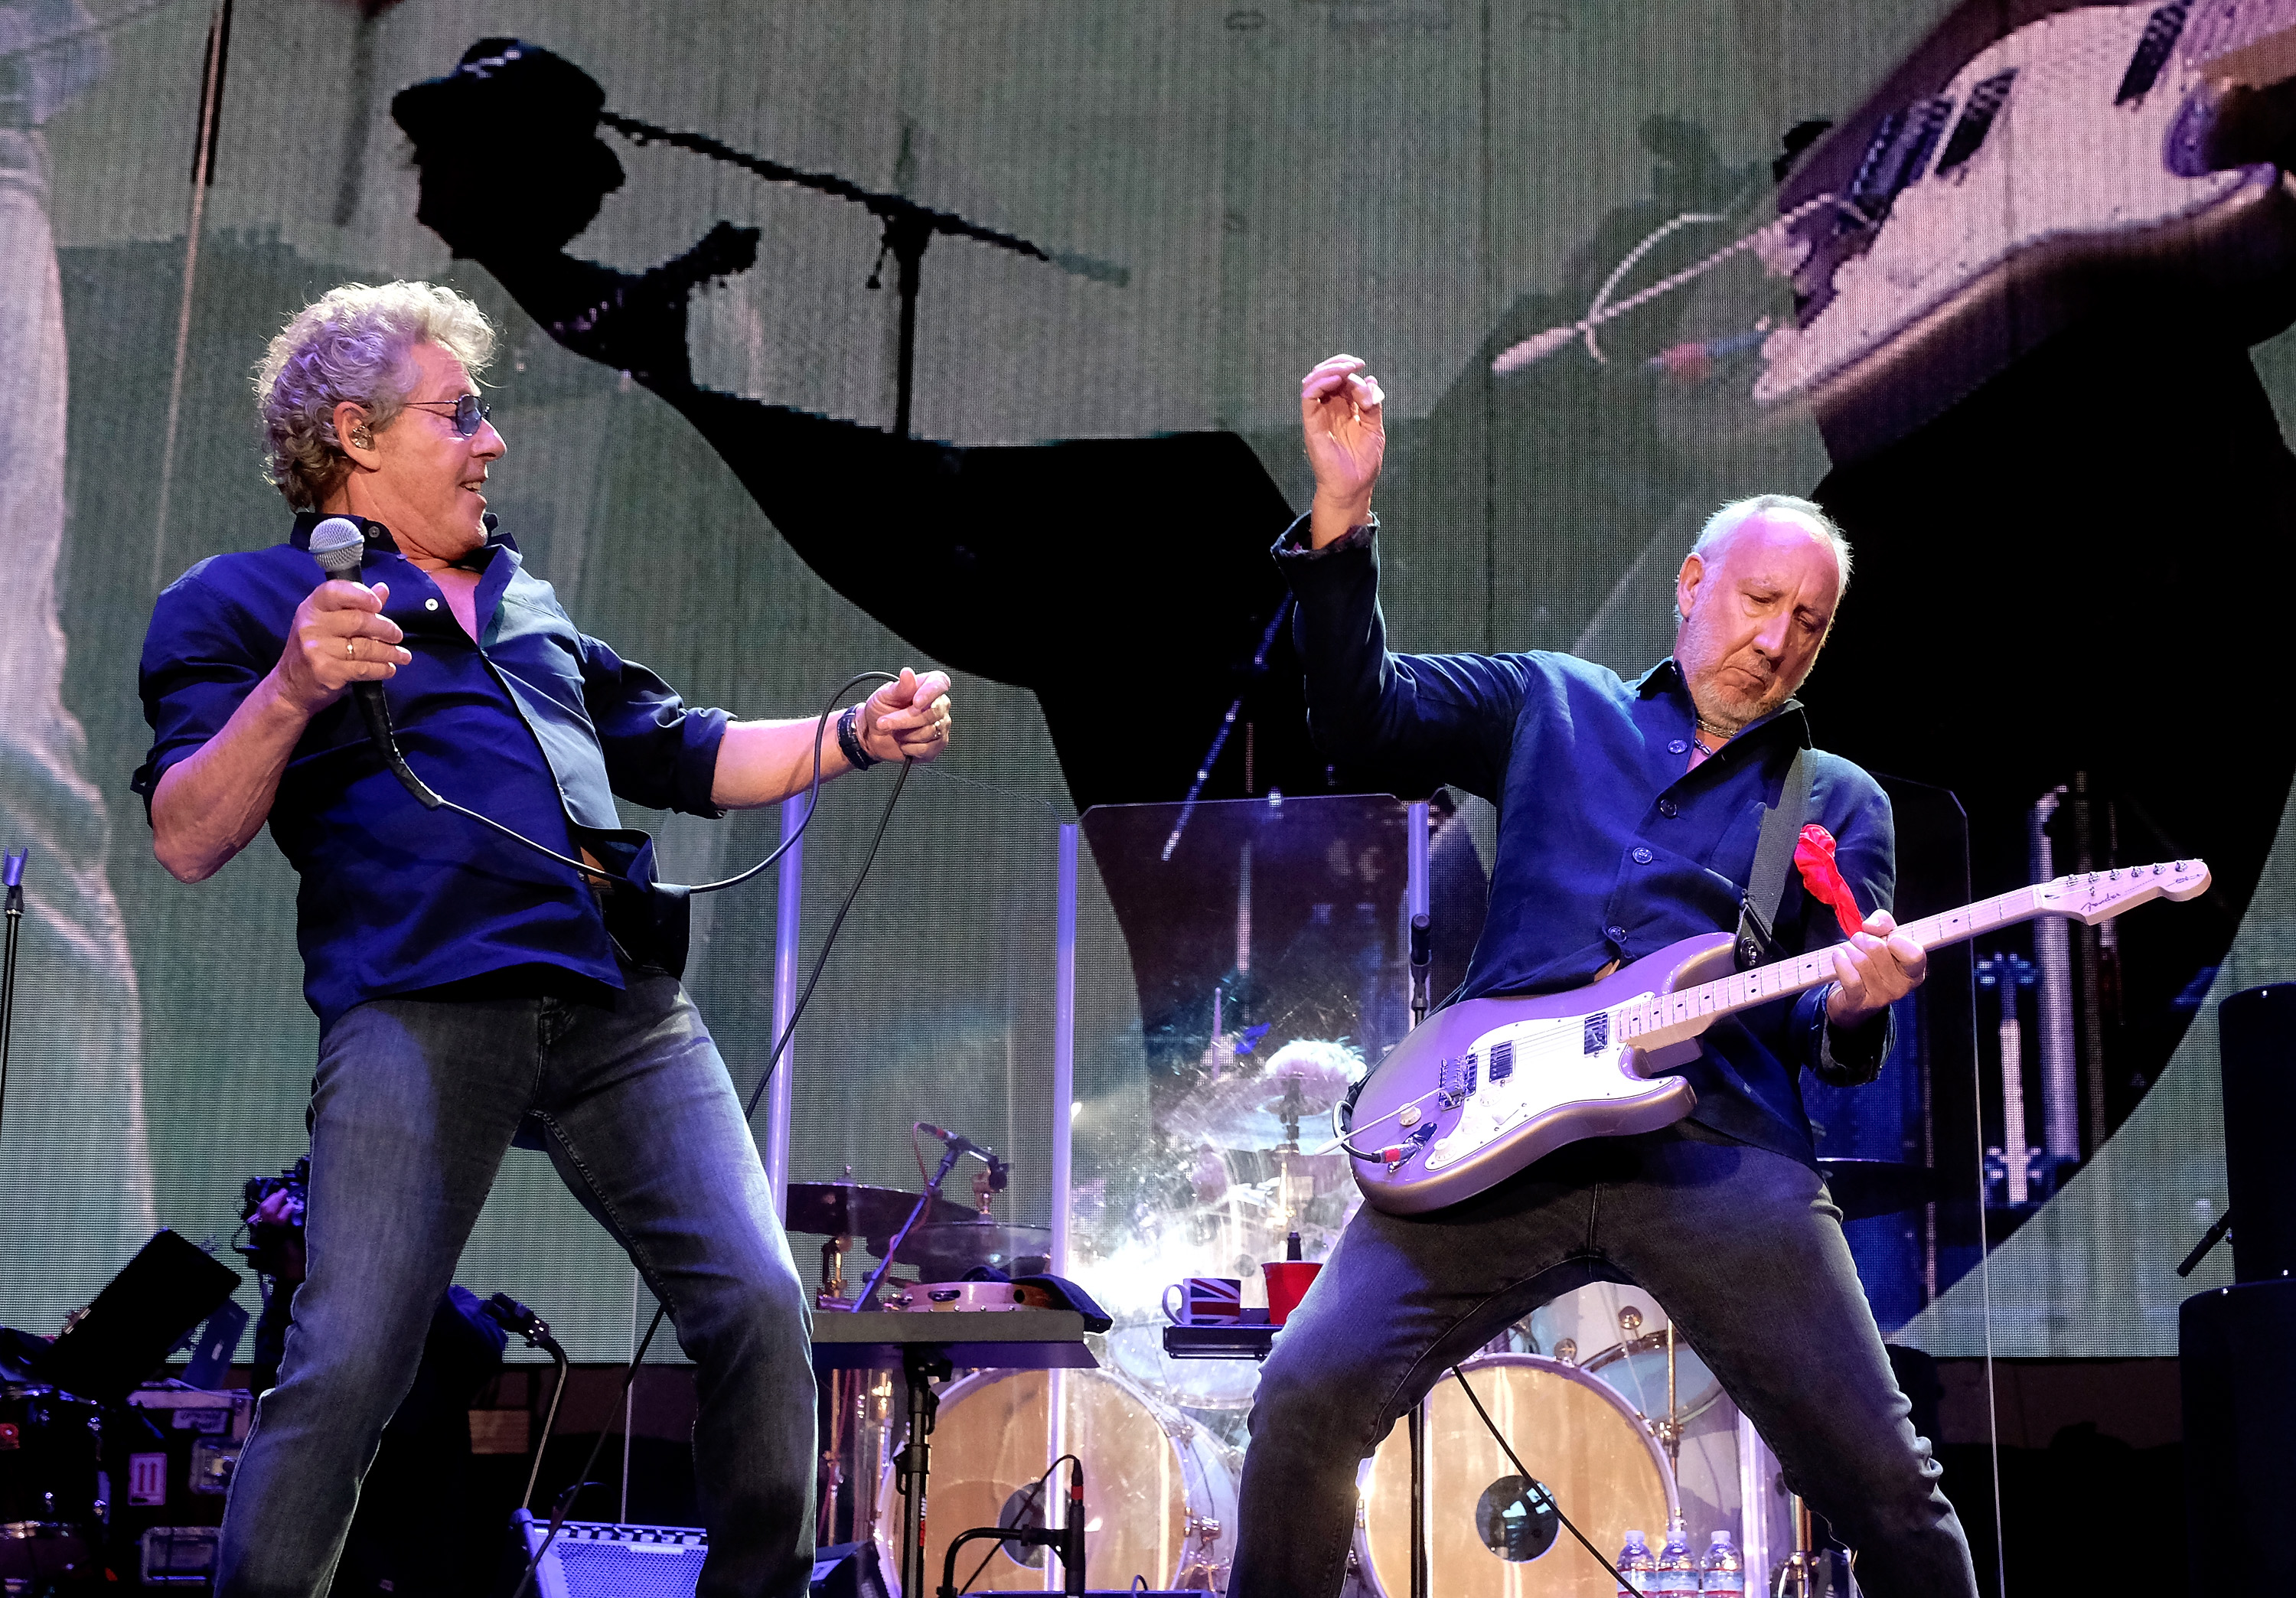 The Who - Roger Daltrey and Pete Townshend